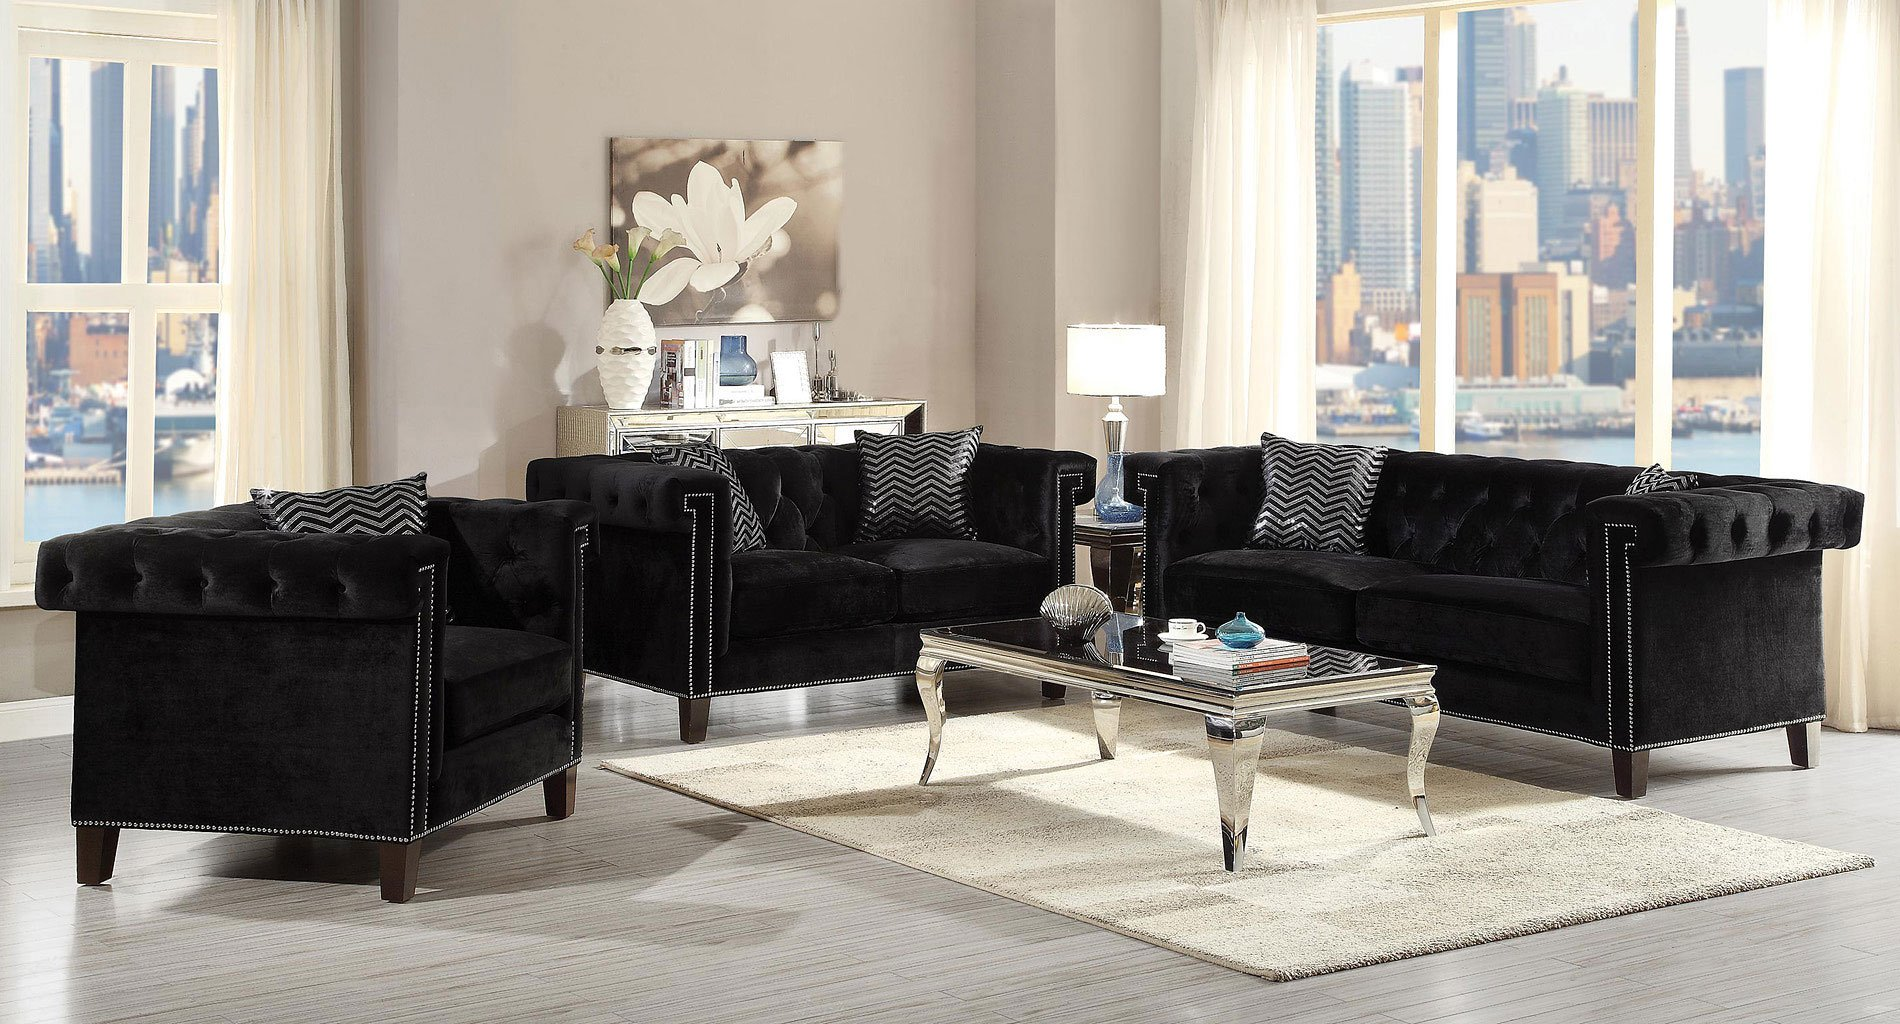 Reventlow Living Room Set